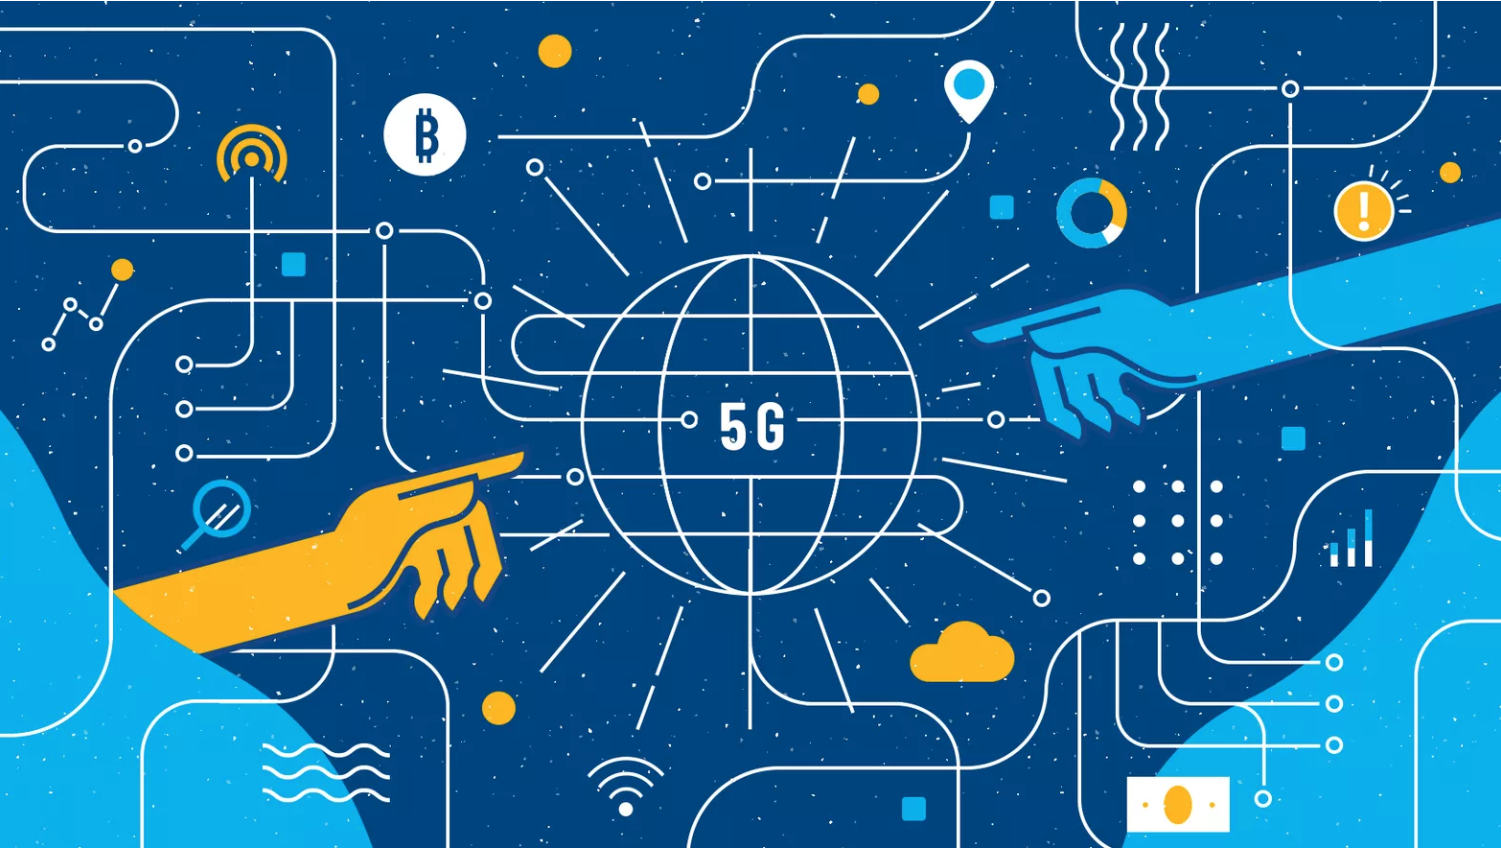 Vox Creative asked me to explain 5G for Recode and Intel. -